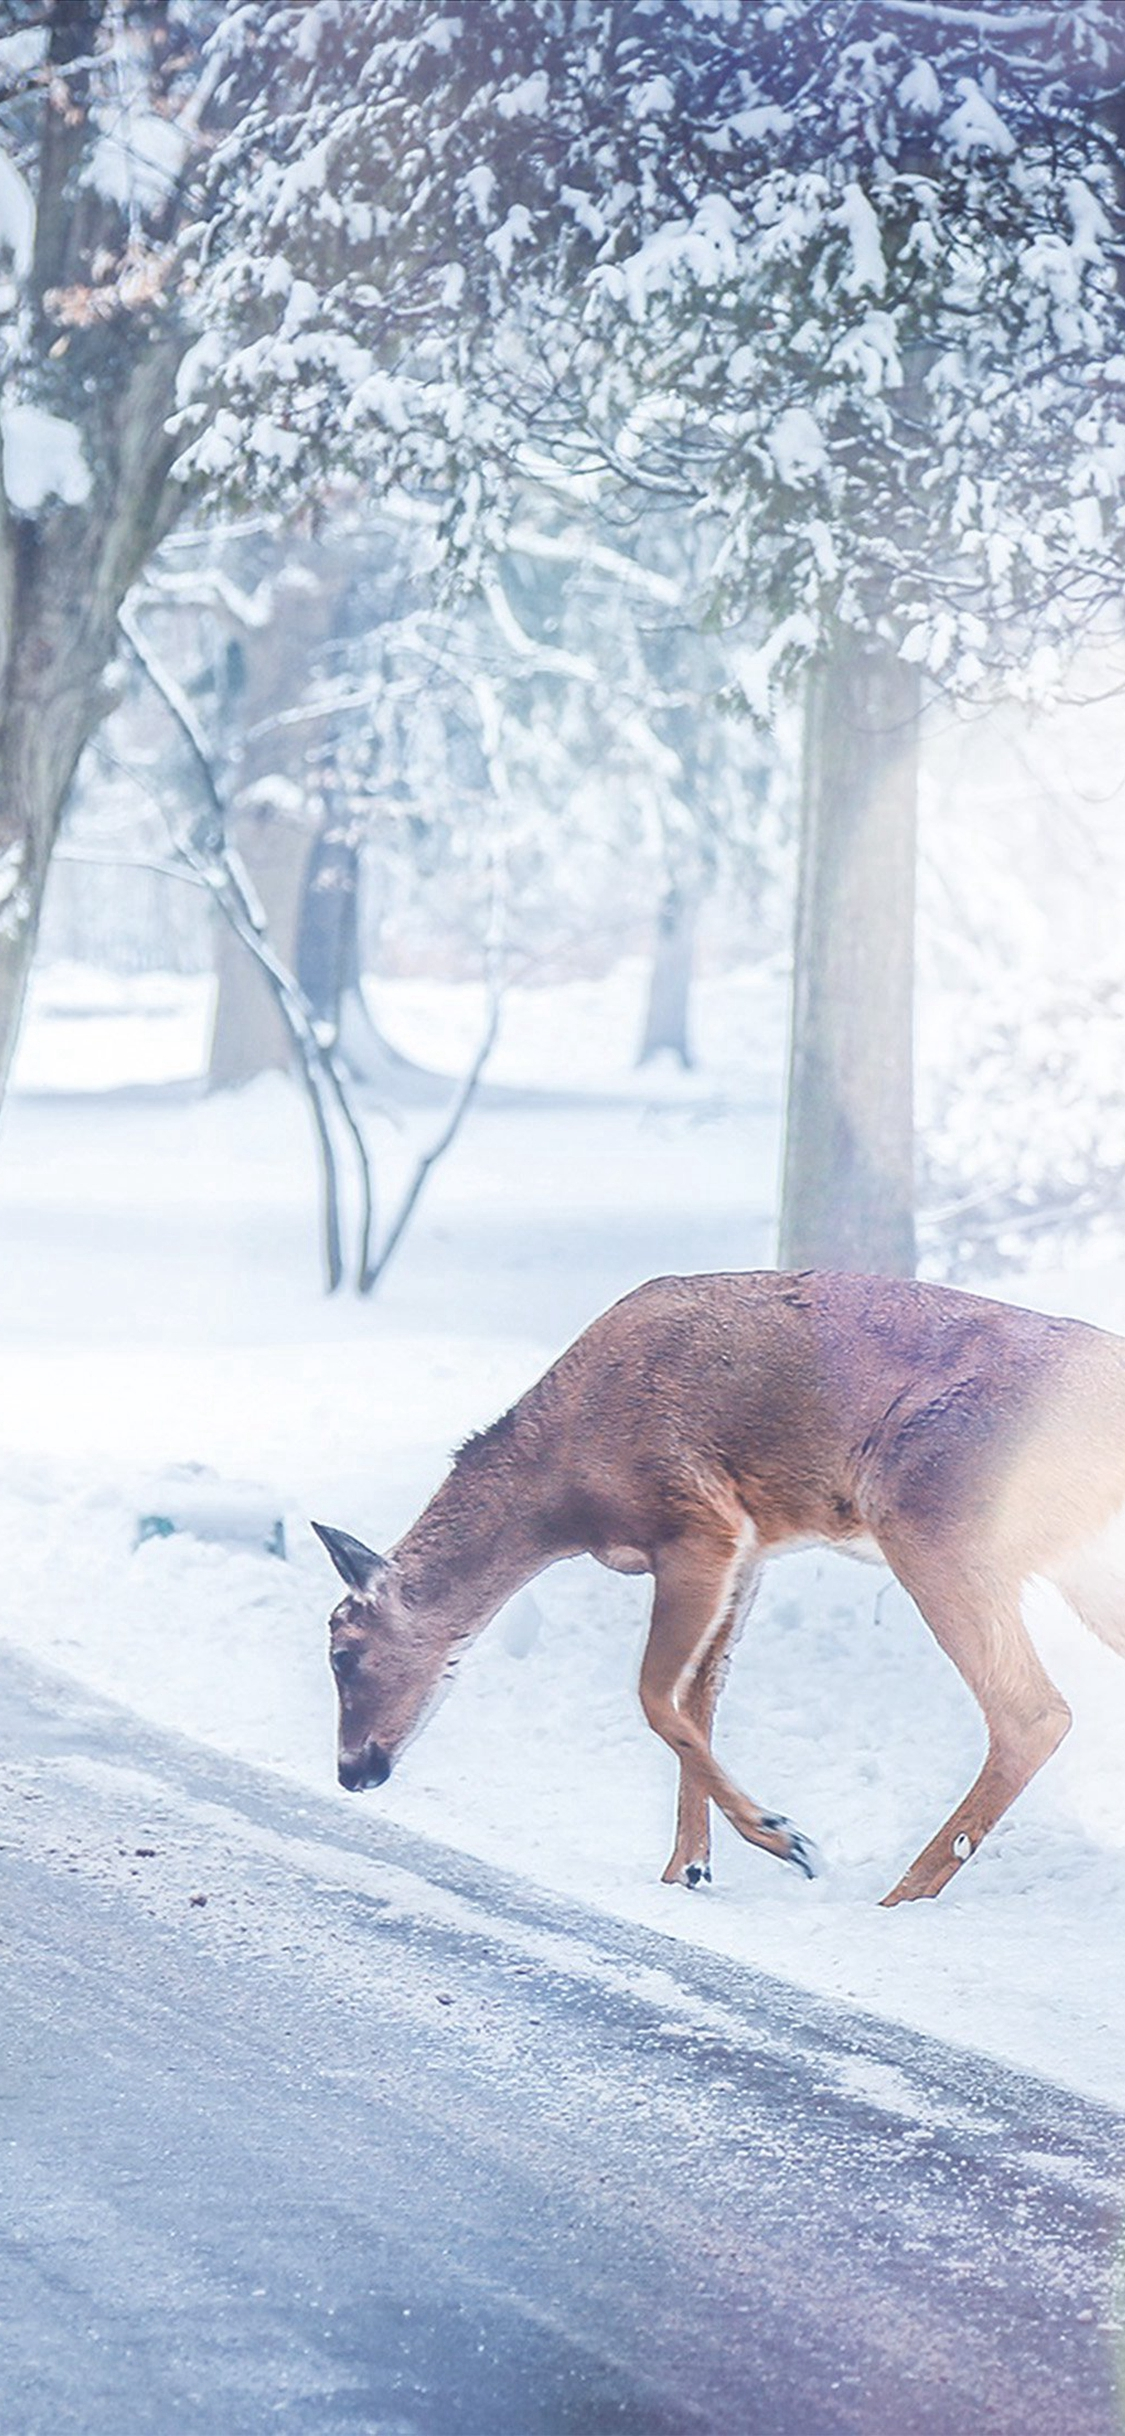 Christmas Deer Street Snow Winter Nature Animal White Iphone